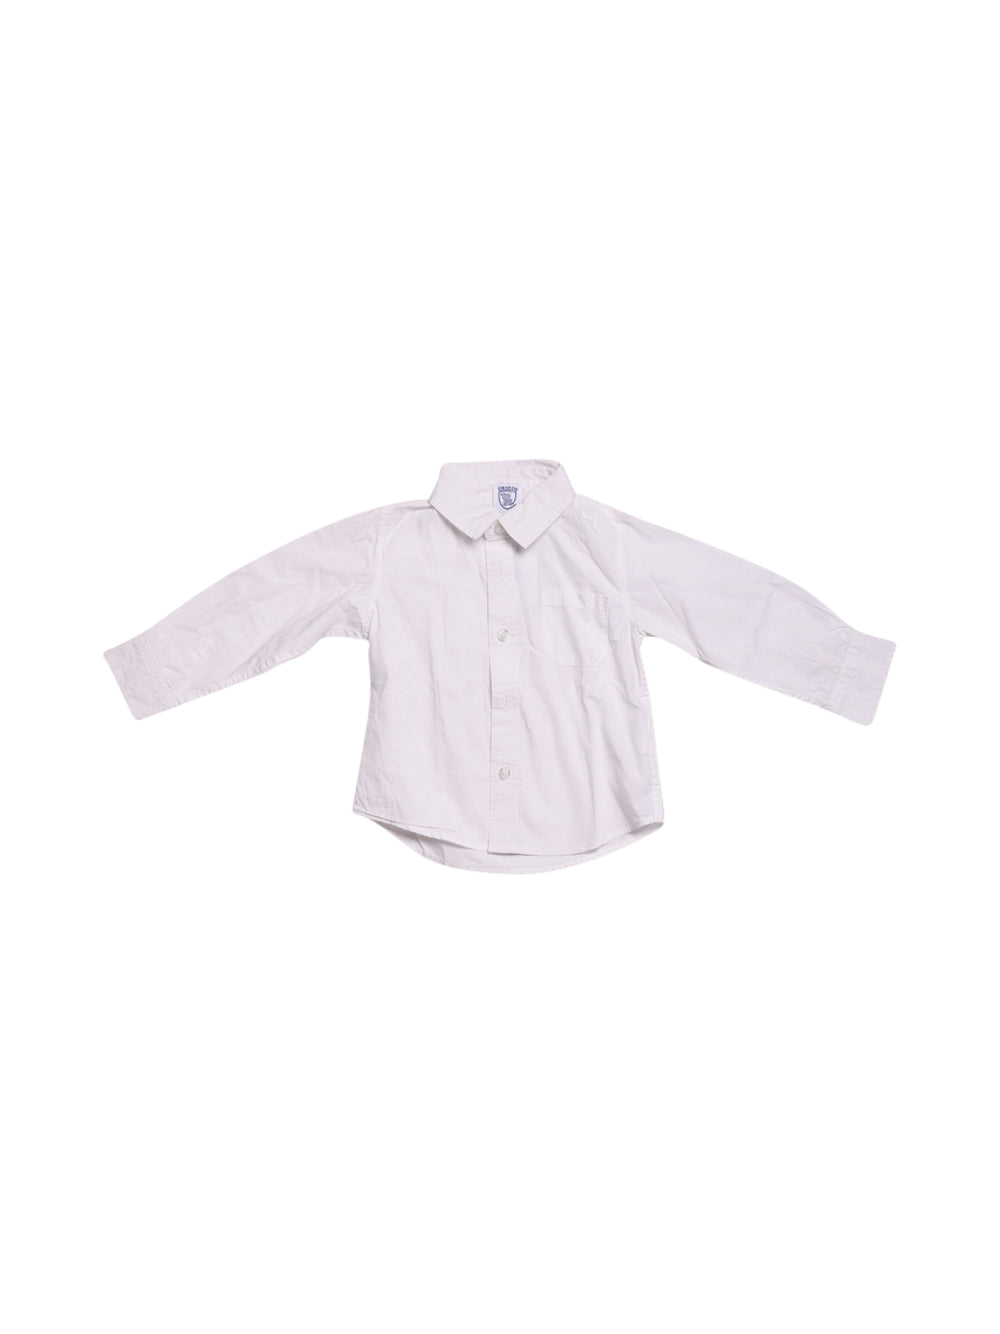 Front photo of Preloved Chicco White Boy's shirt - size 2-3 yrs